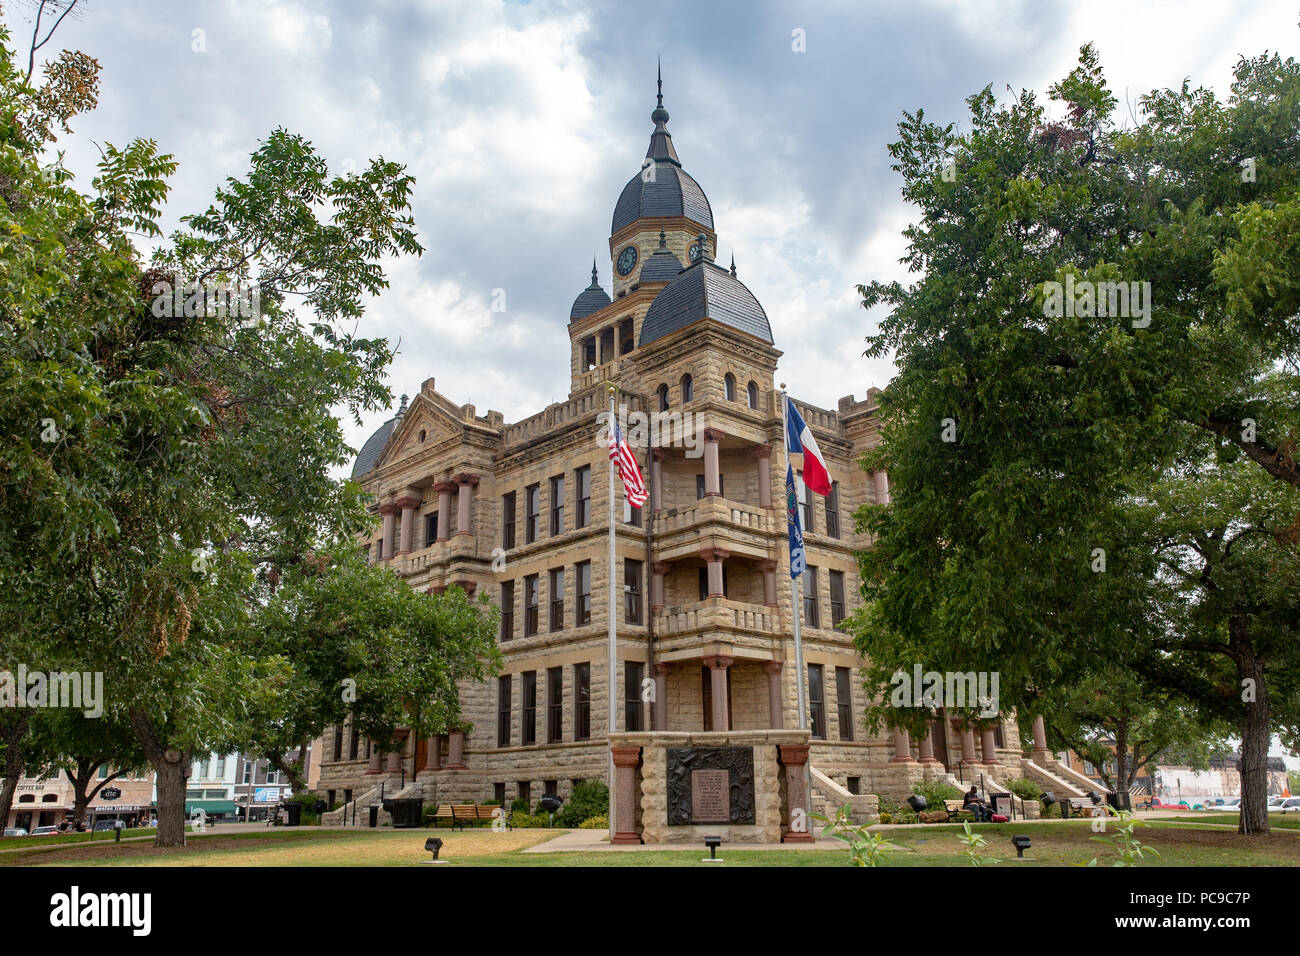 The historic 1896 Denton county courthouse located in Denton Texas built in Romanesque Revival style - Stock Image